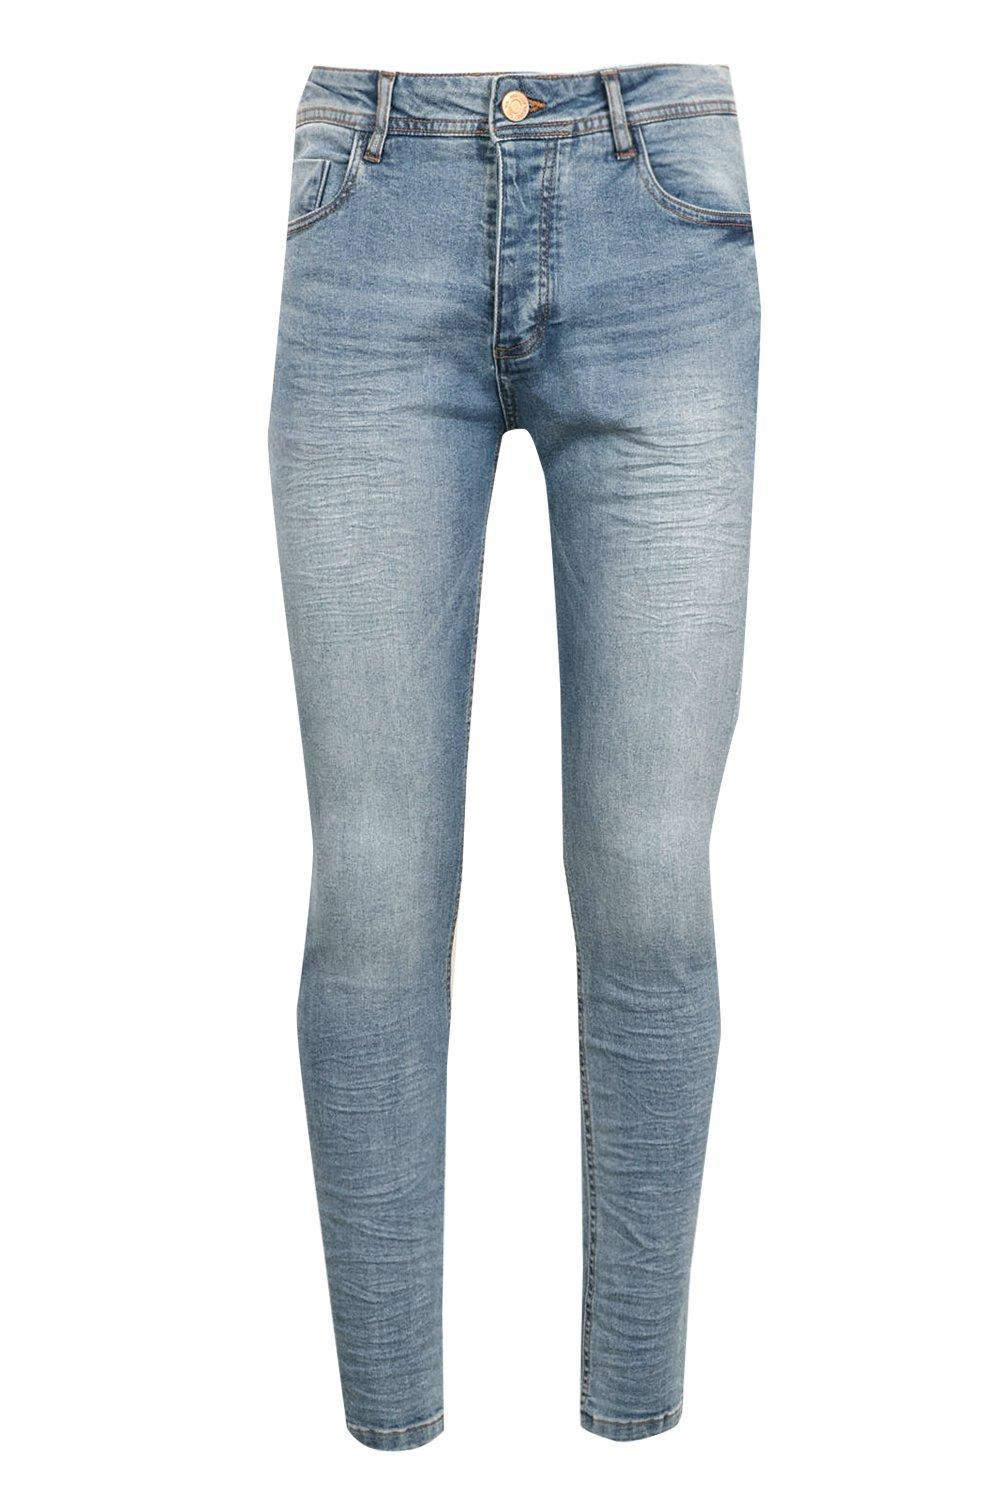 BoohooMAN Stretch Skinny Blue Wash Denim Jeans for Men